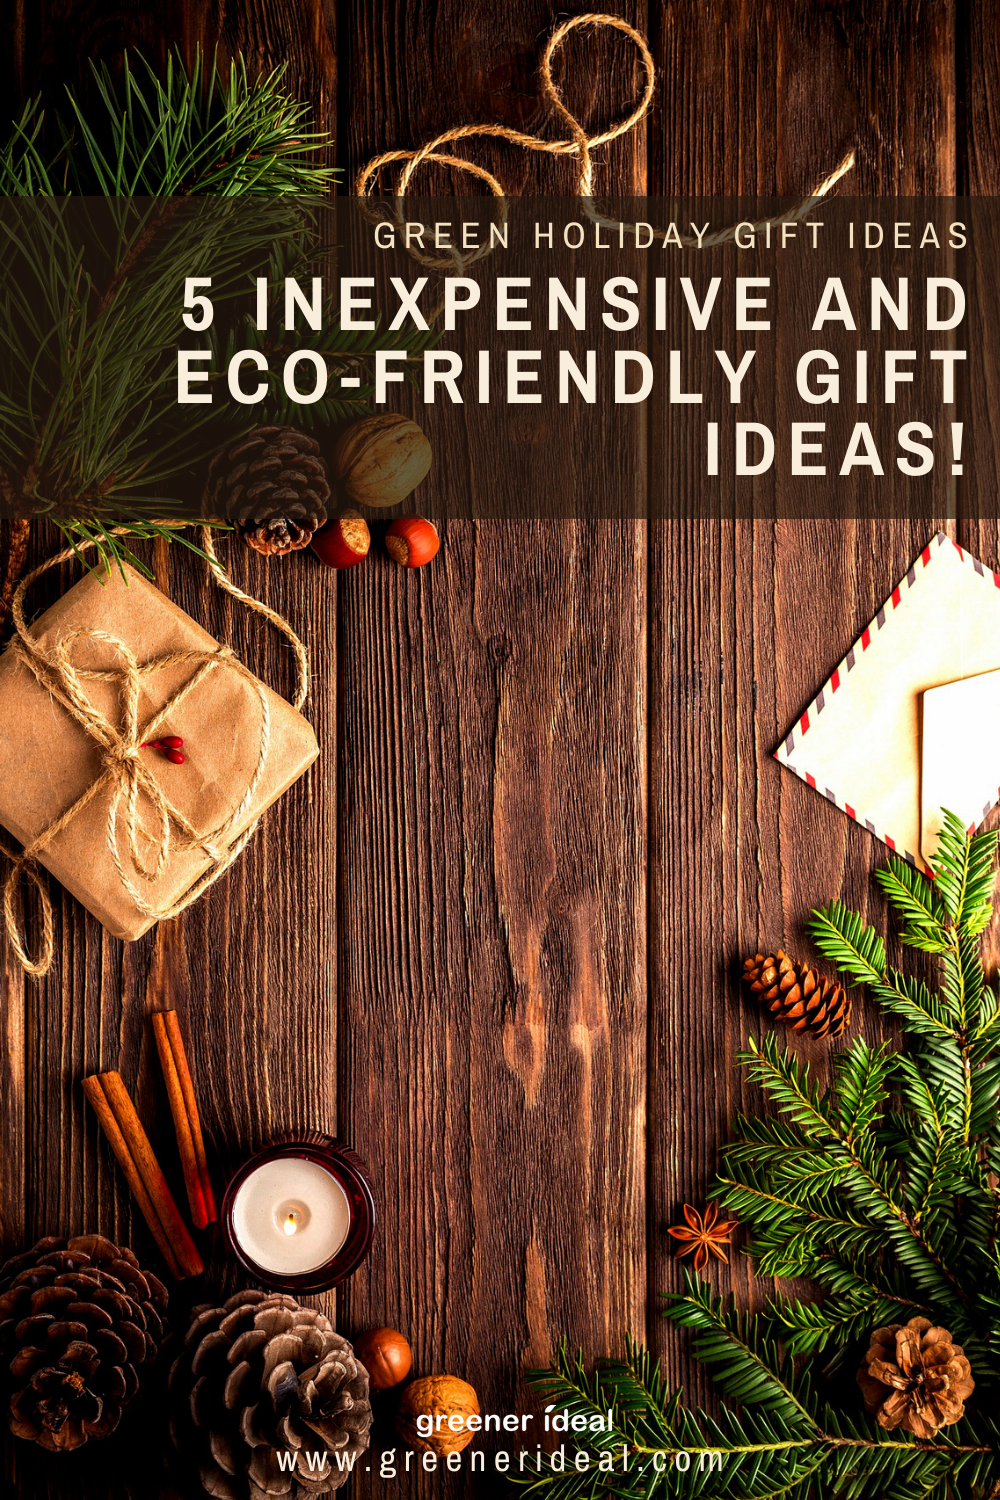 Green Holiday Gift Ideas 5 Inexpensive And Eco Friendly Gift Ideas In 2020 Holiday Eco Friendly Gifts Holiday Gifts